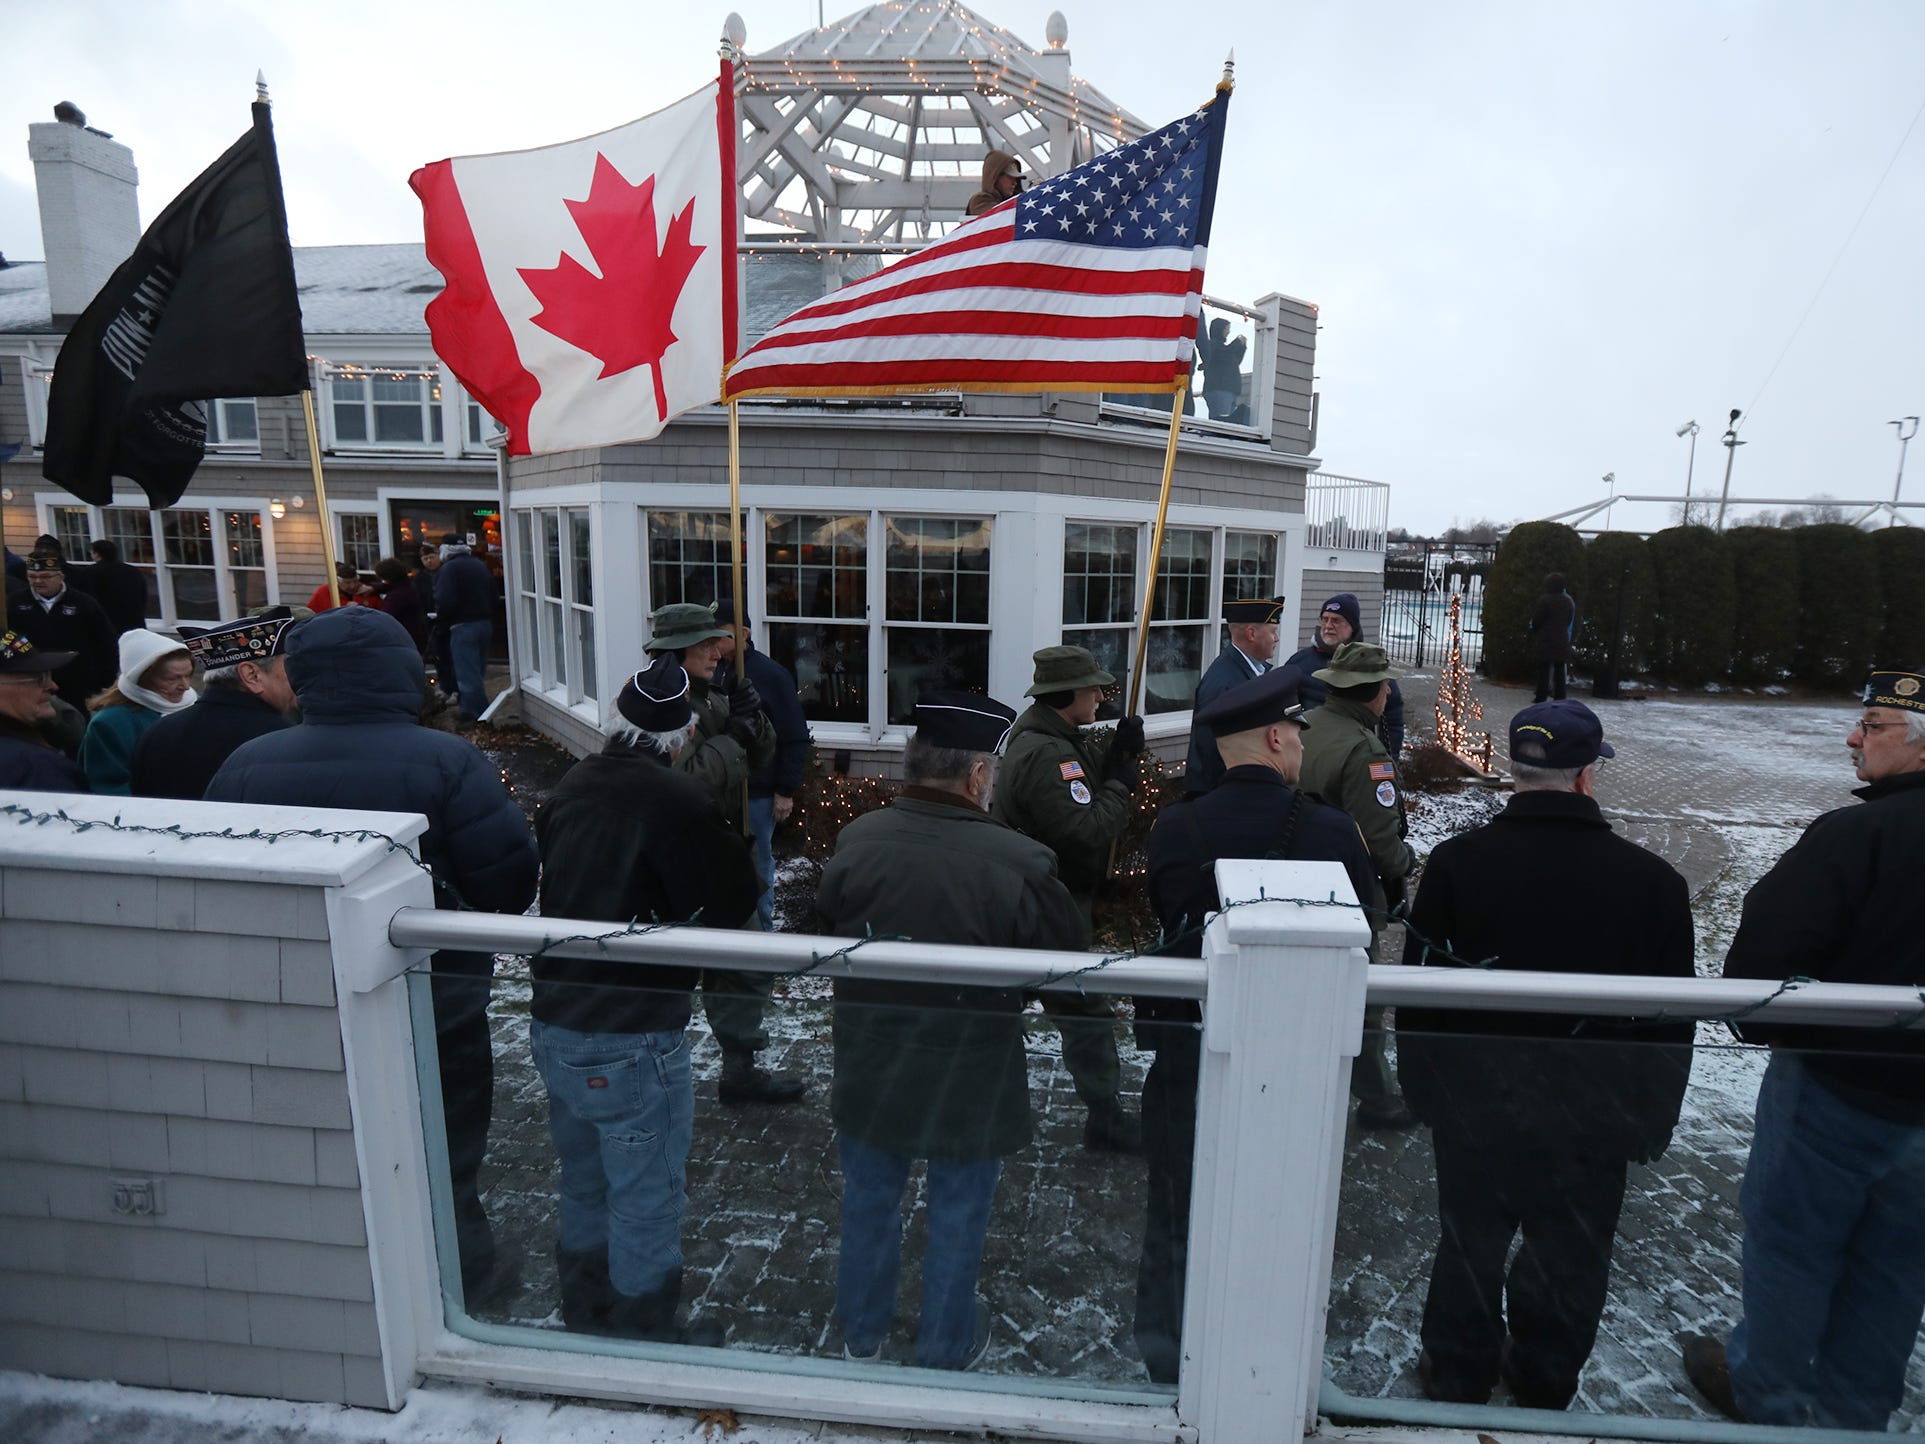 Monroe County American Legion members held a ceremony honoring the victims of Pearl Harbor at the Rochester Yacht Club.